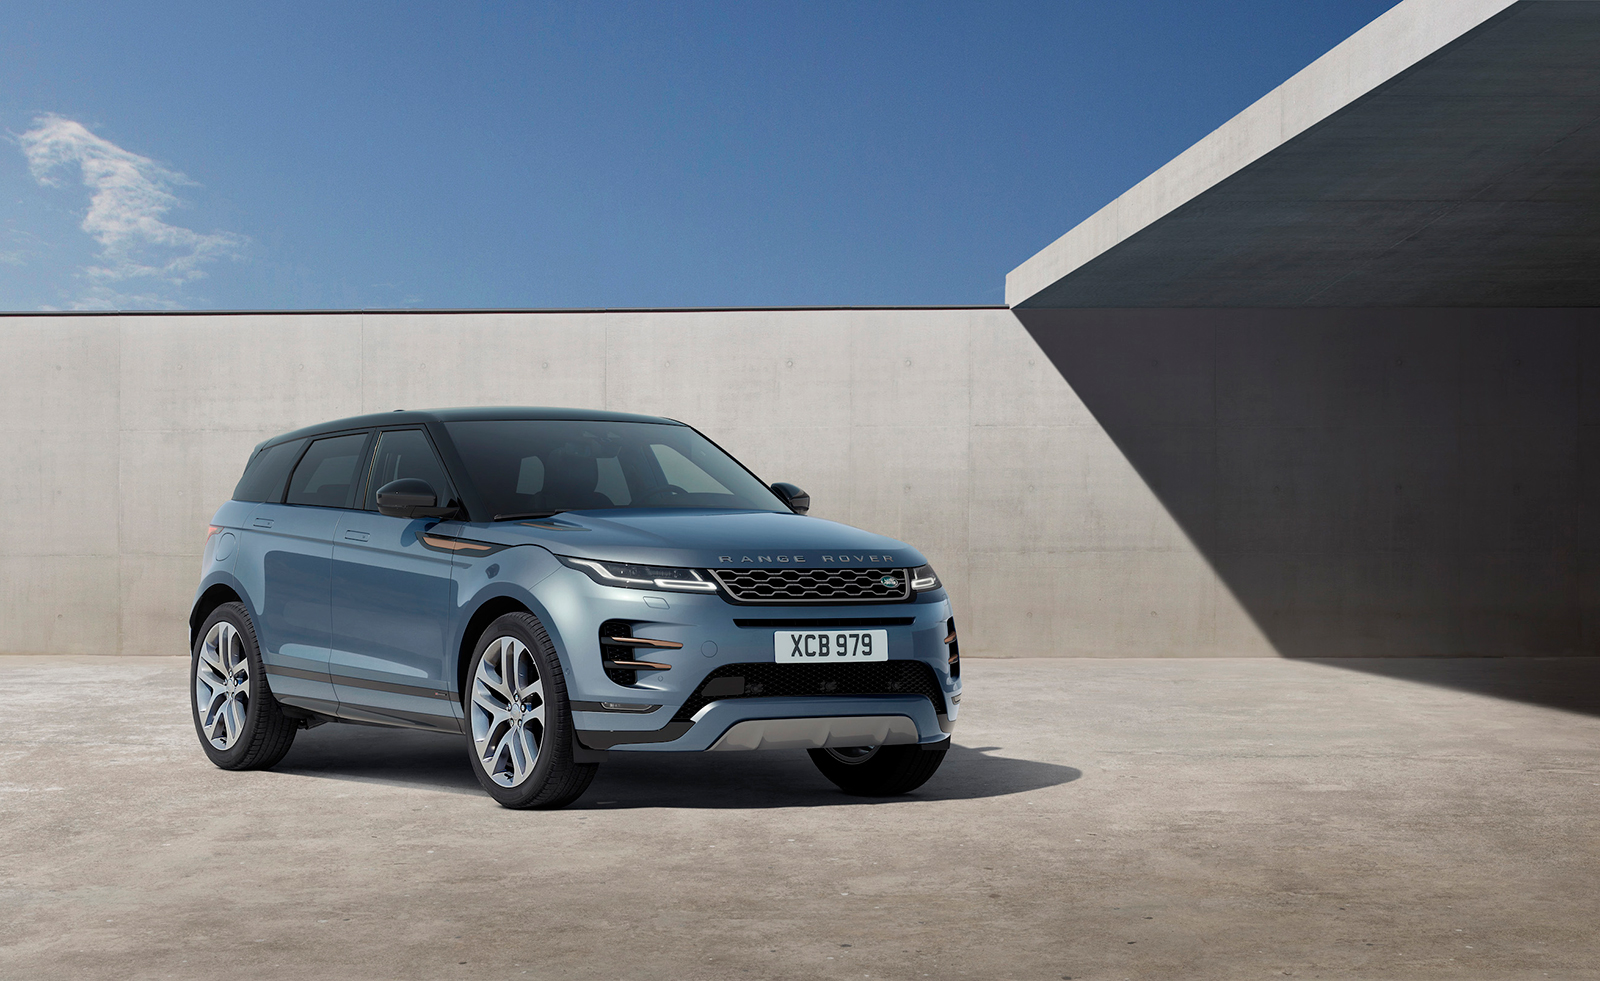 Range Rover Evoque 2019 Design Review Wallpaper